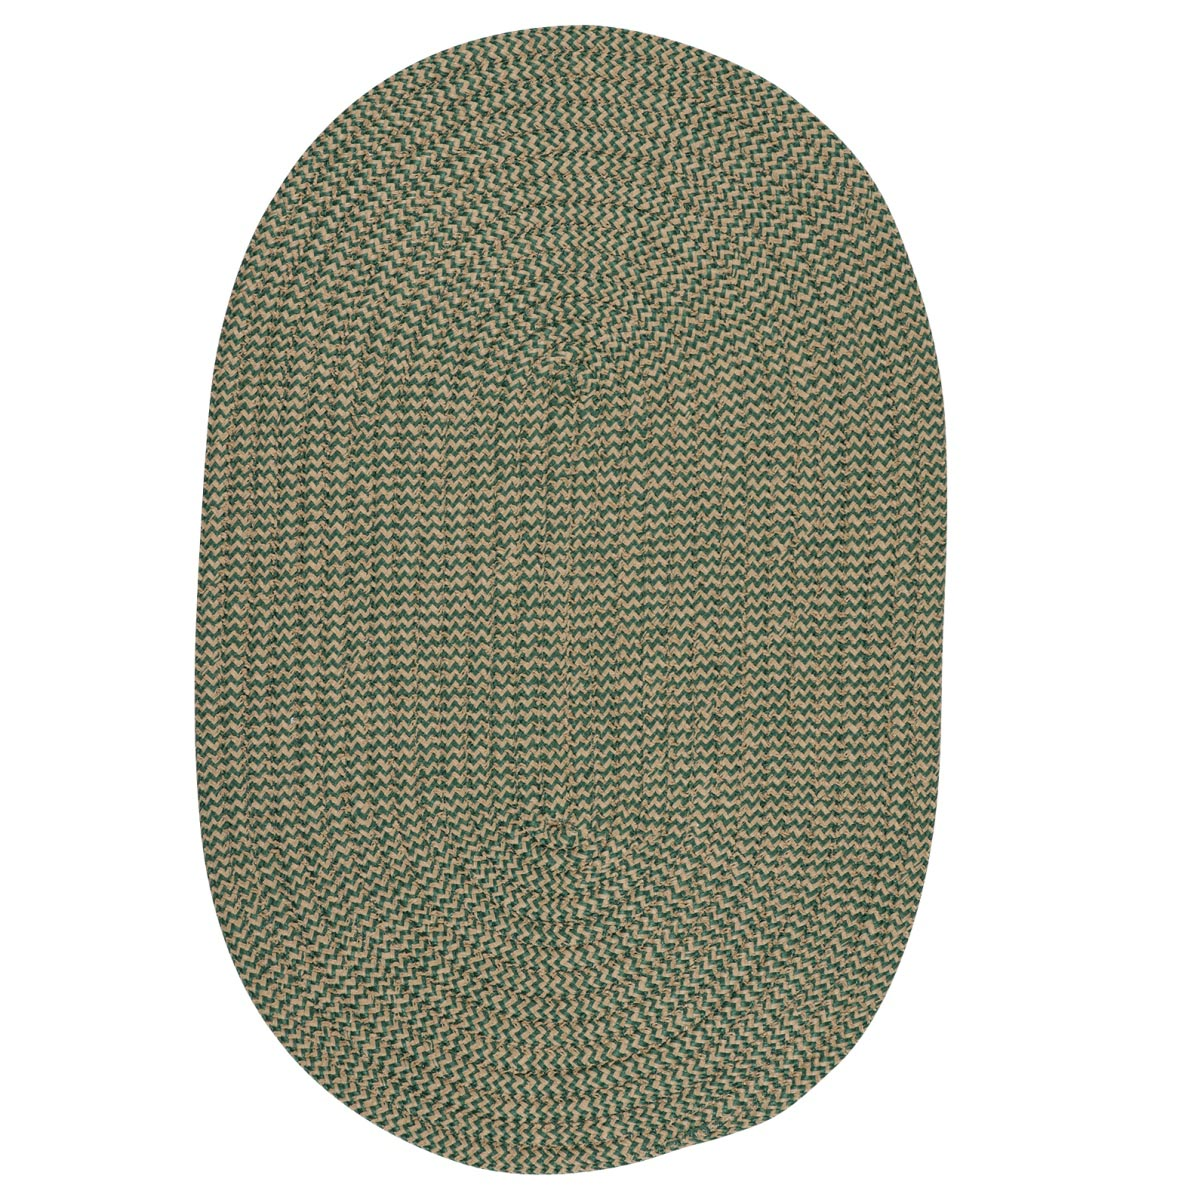 Softex Check Myrtle Green Check Outdoor Braided Oval Rugs